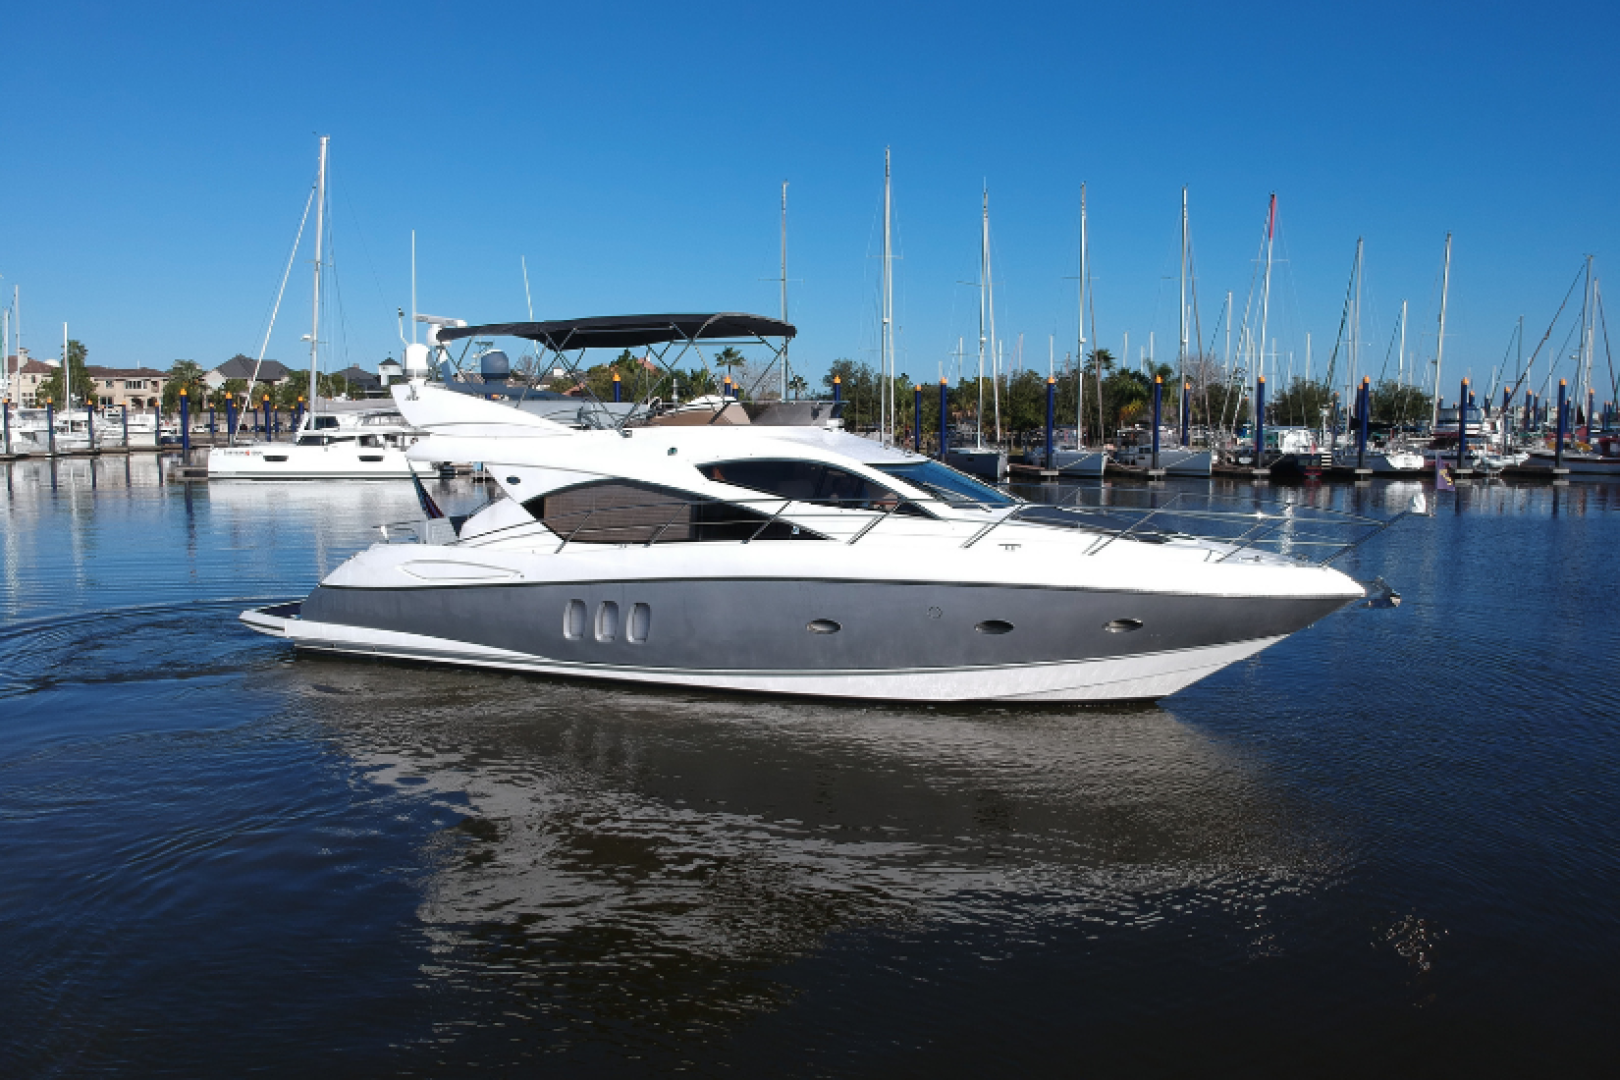 Sunseeker-52 Manhattan 2009-Pura Vida Kemah-Texas-United States-Sunseeker 52 Manhattan 2009 Pura Vida-1584001 | Thumbnail